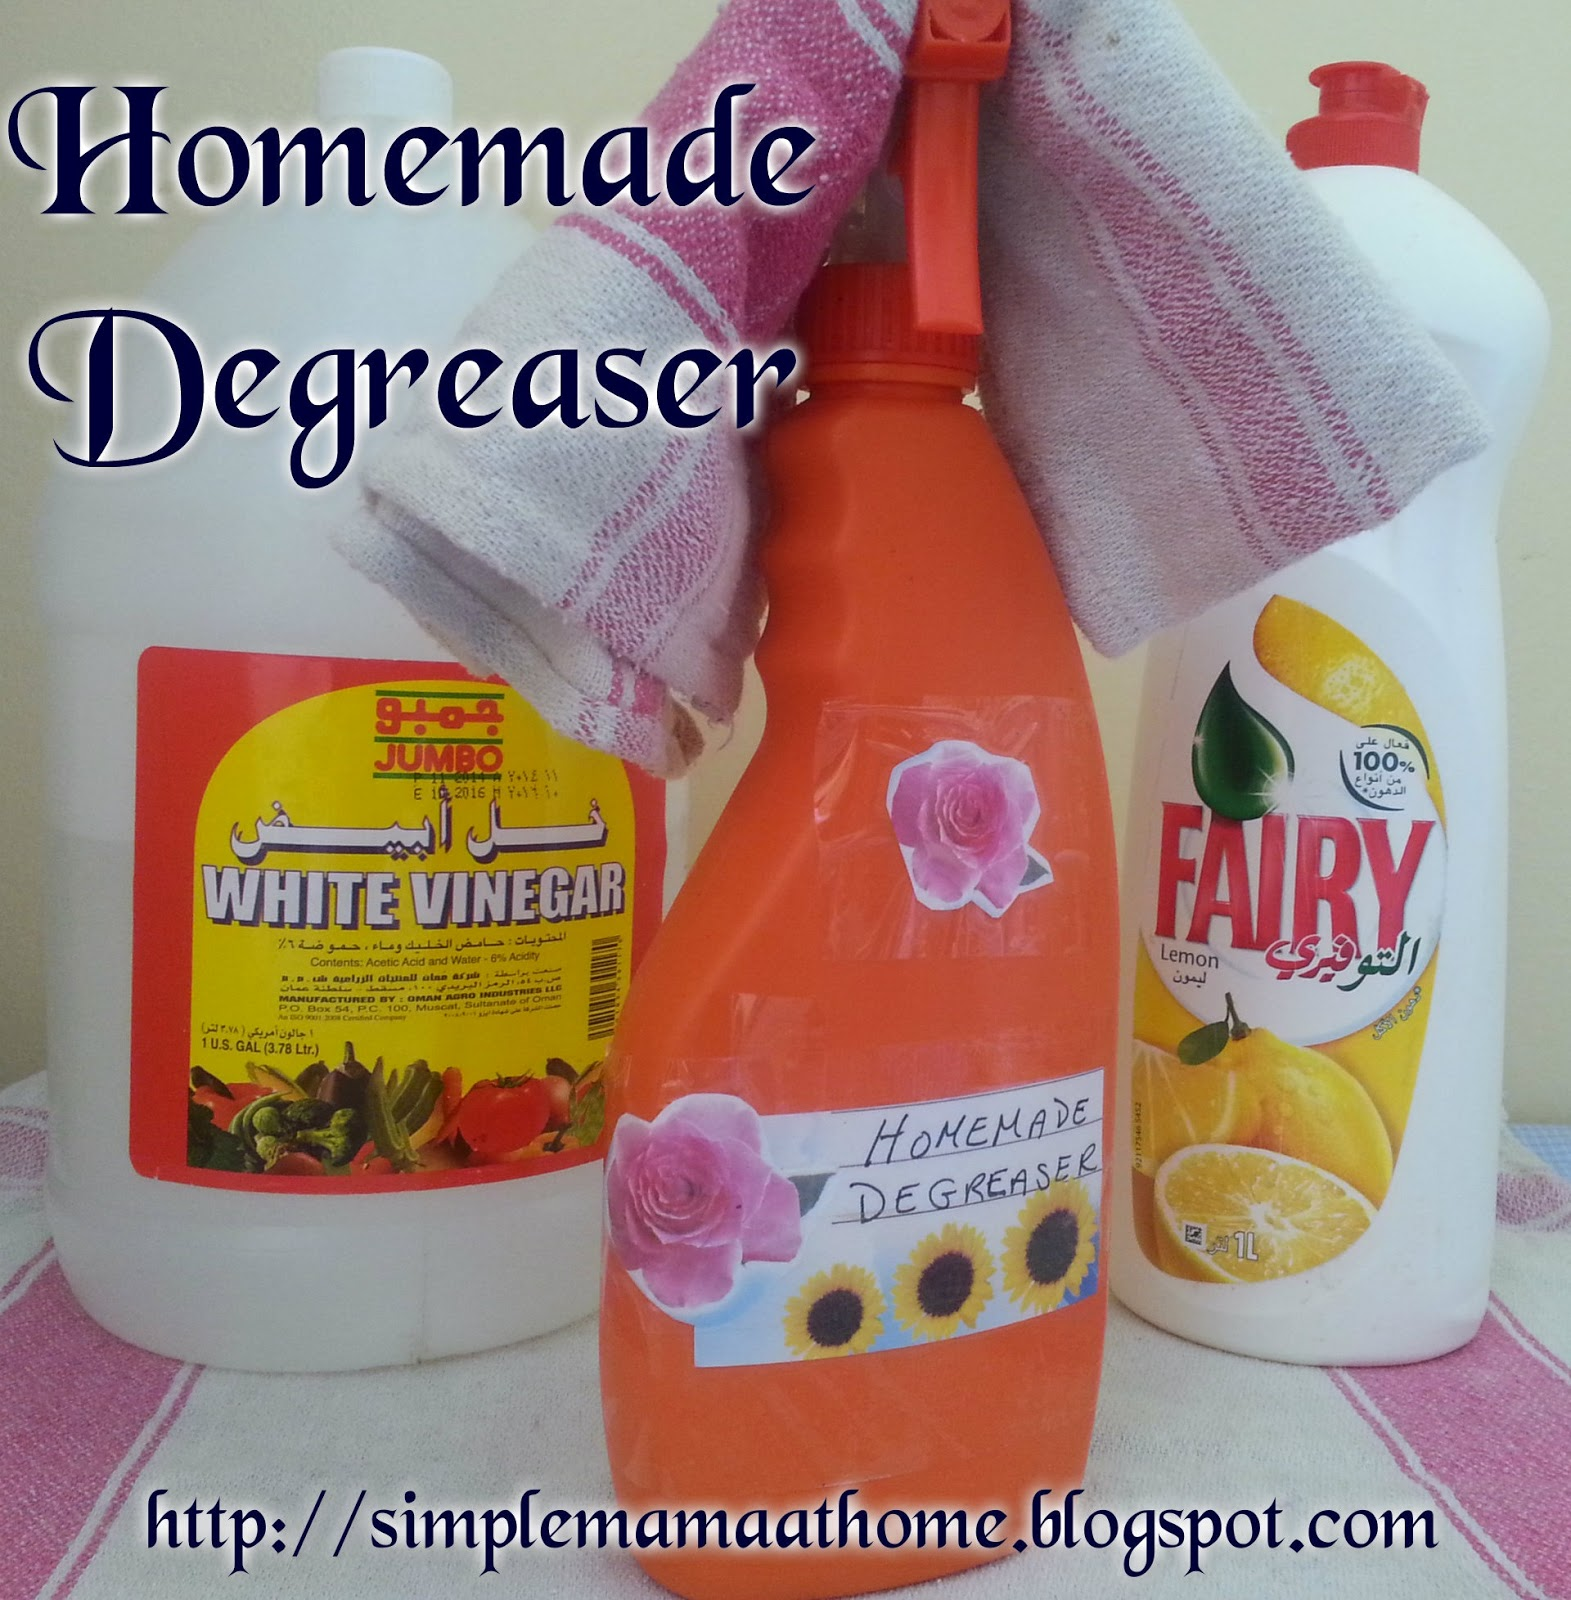 Homemade Degreaser